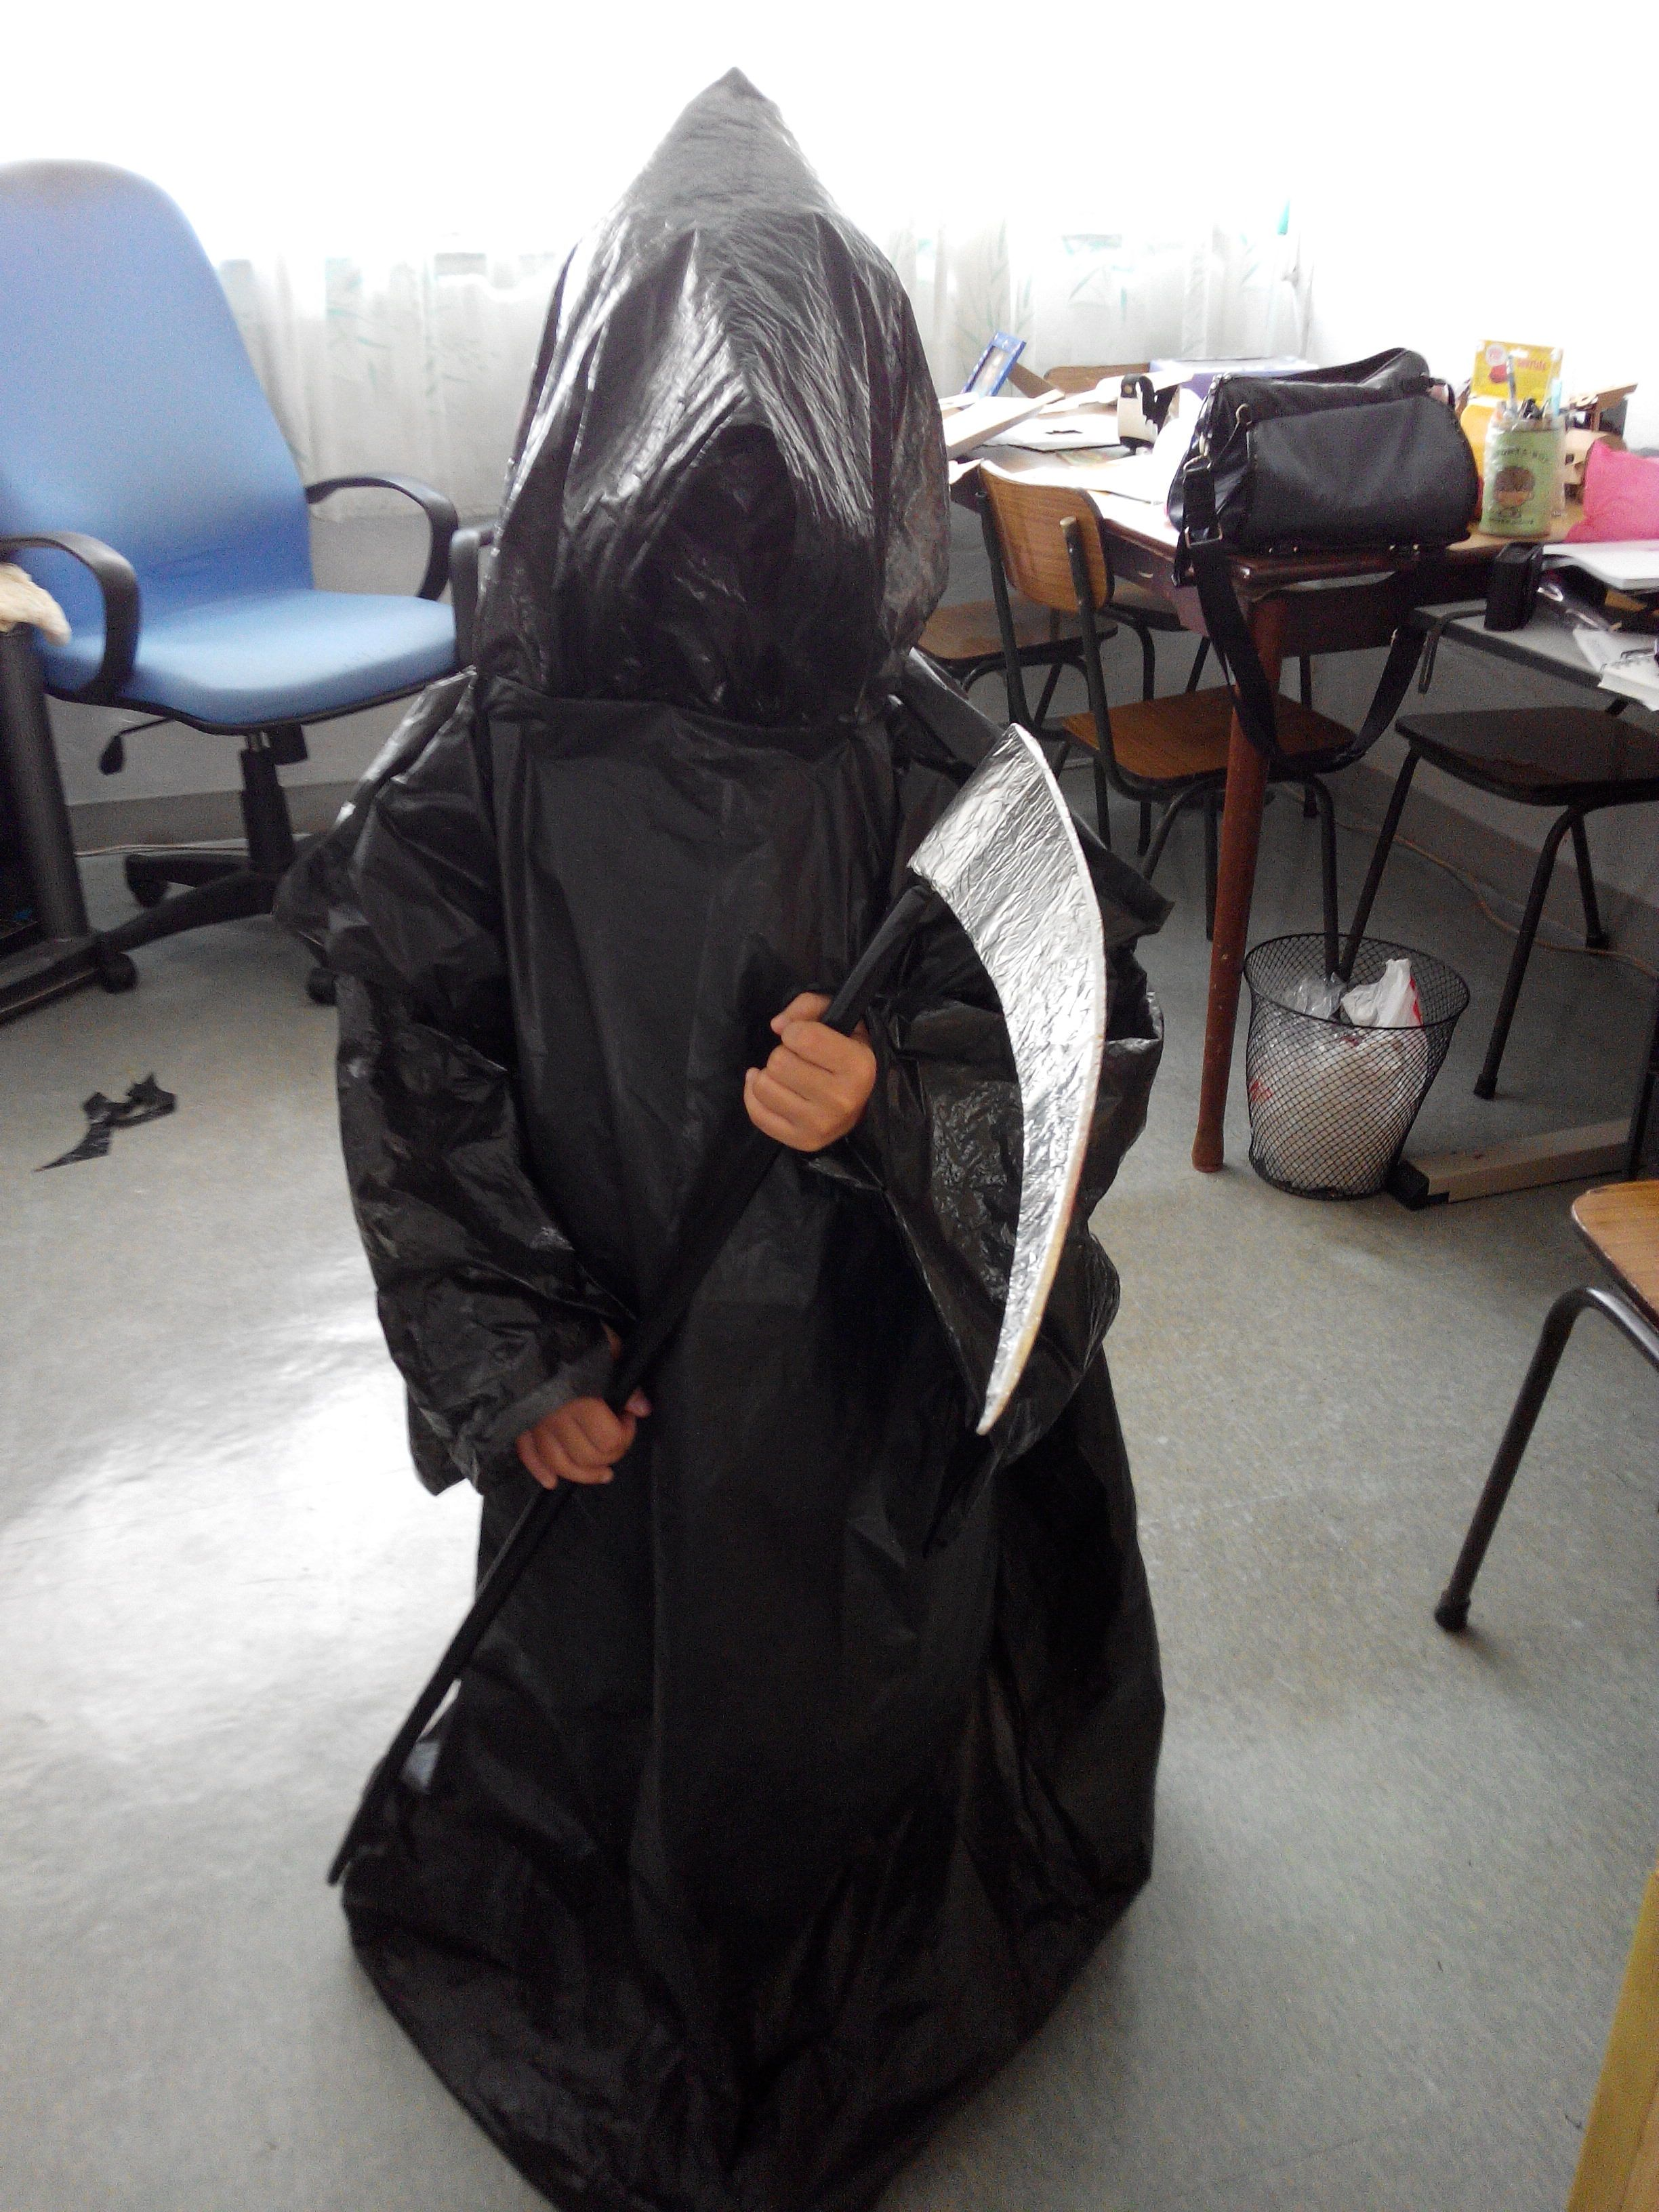 Grim reaper costume. Made from trash bags. Scythe made from